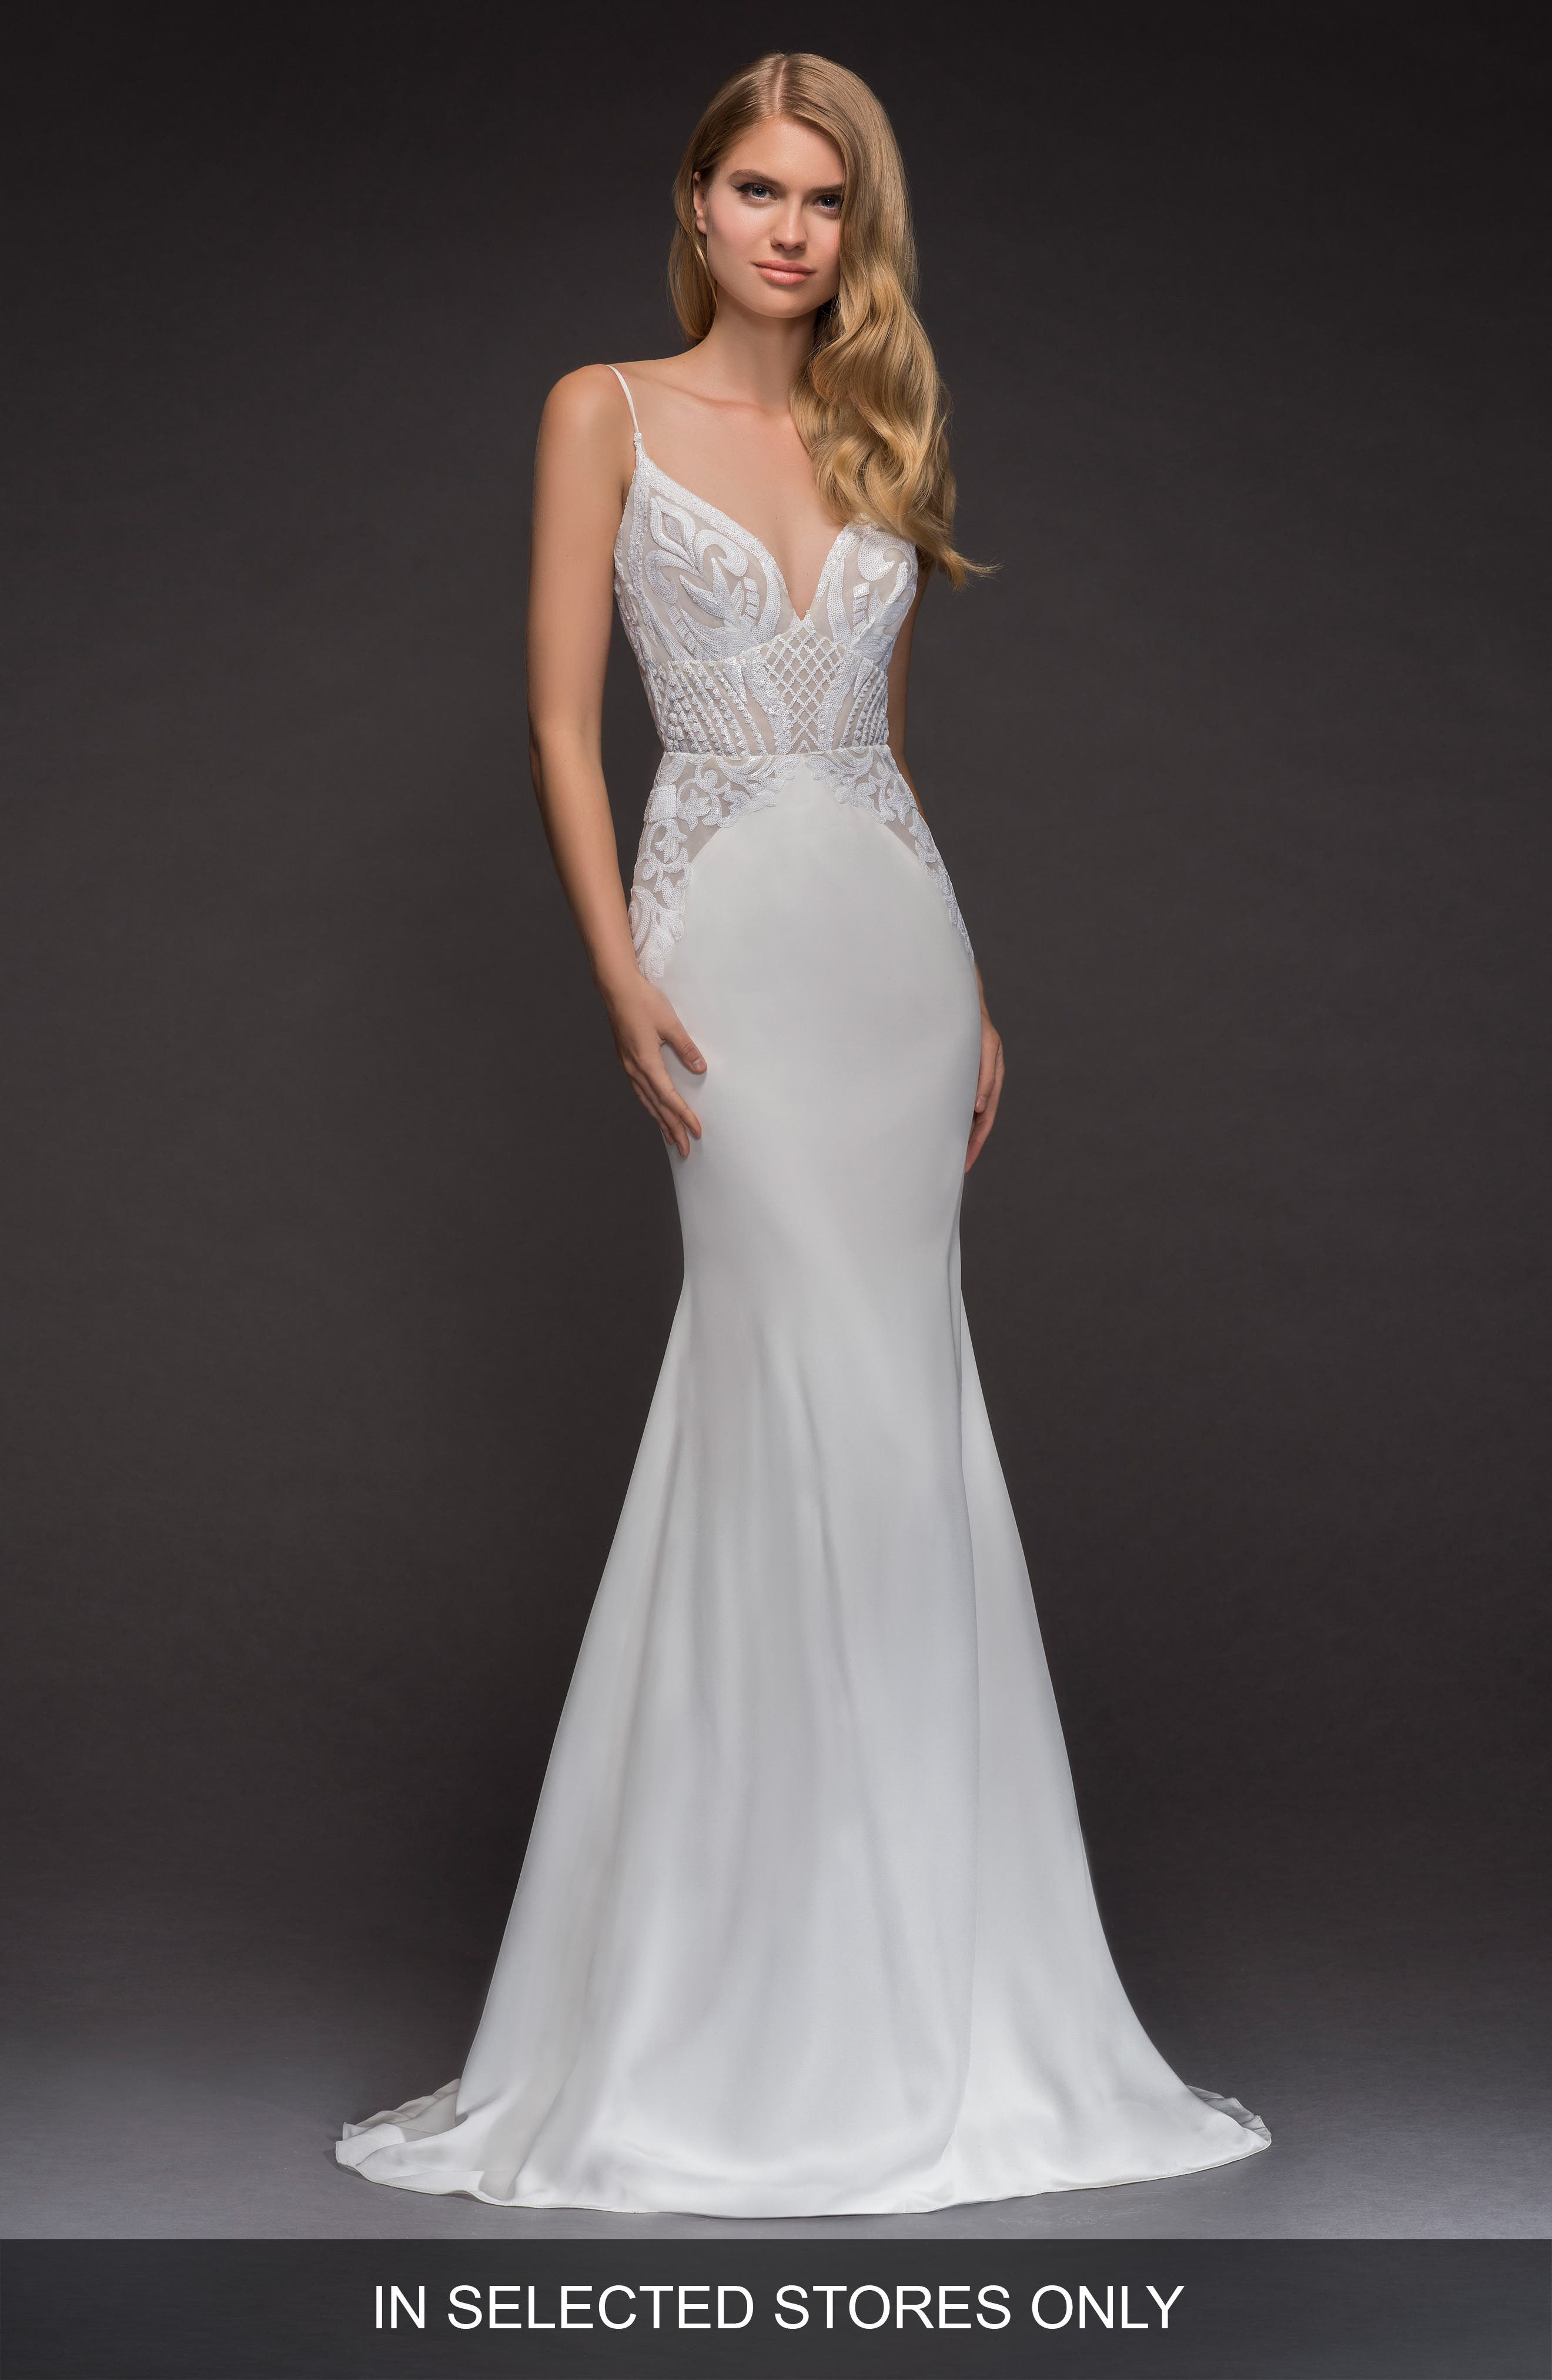 Blush By Hayley Paige Xenia Beaded Crepe Mermaid Gown, Size IN STORE ONLY - Ivory